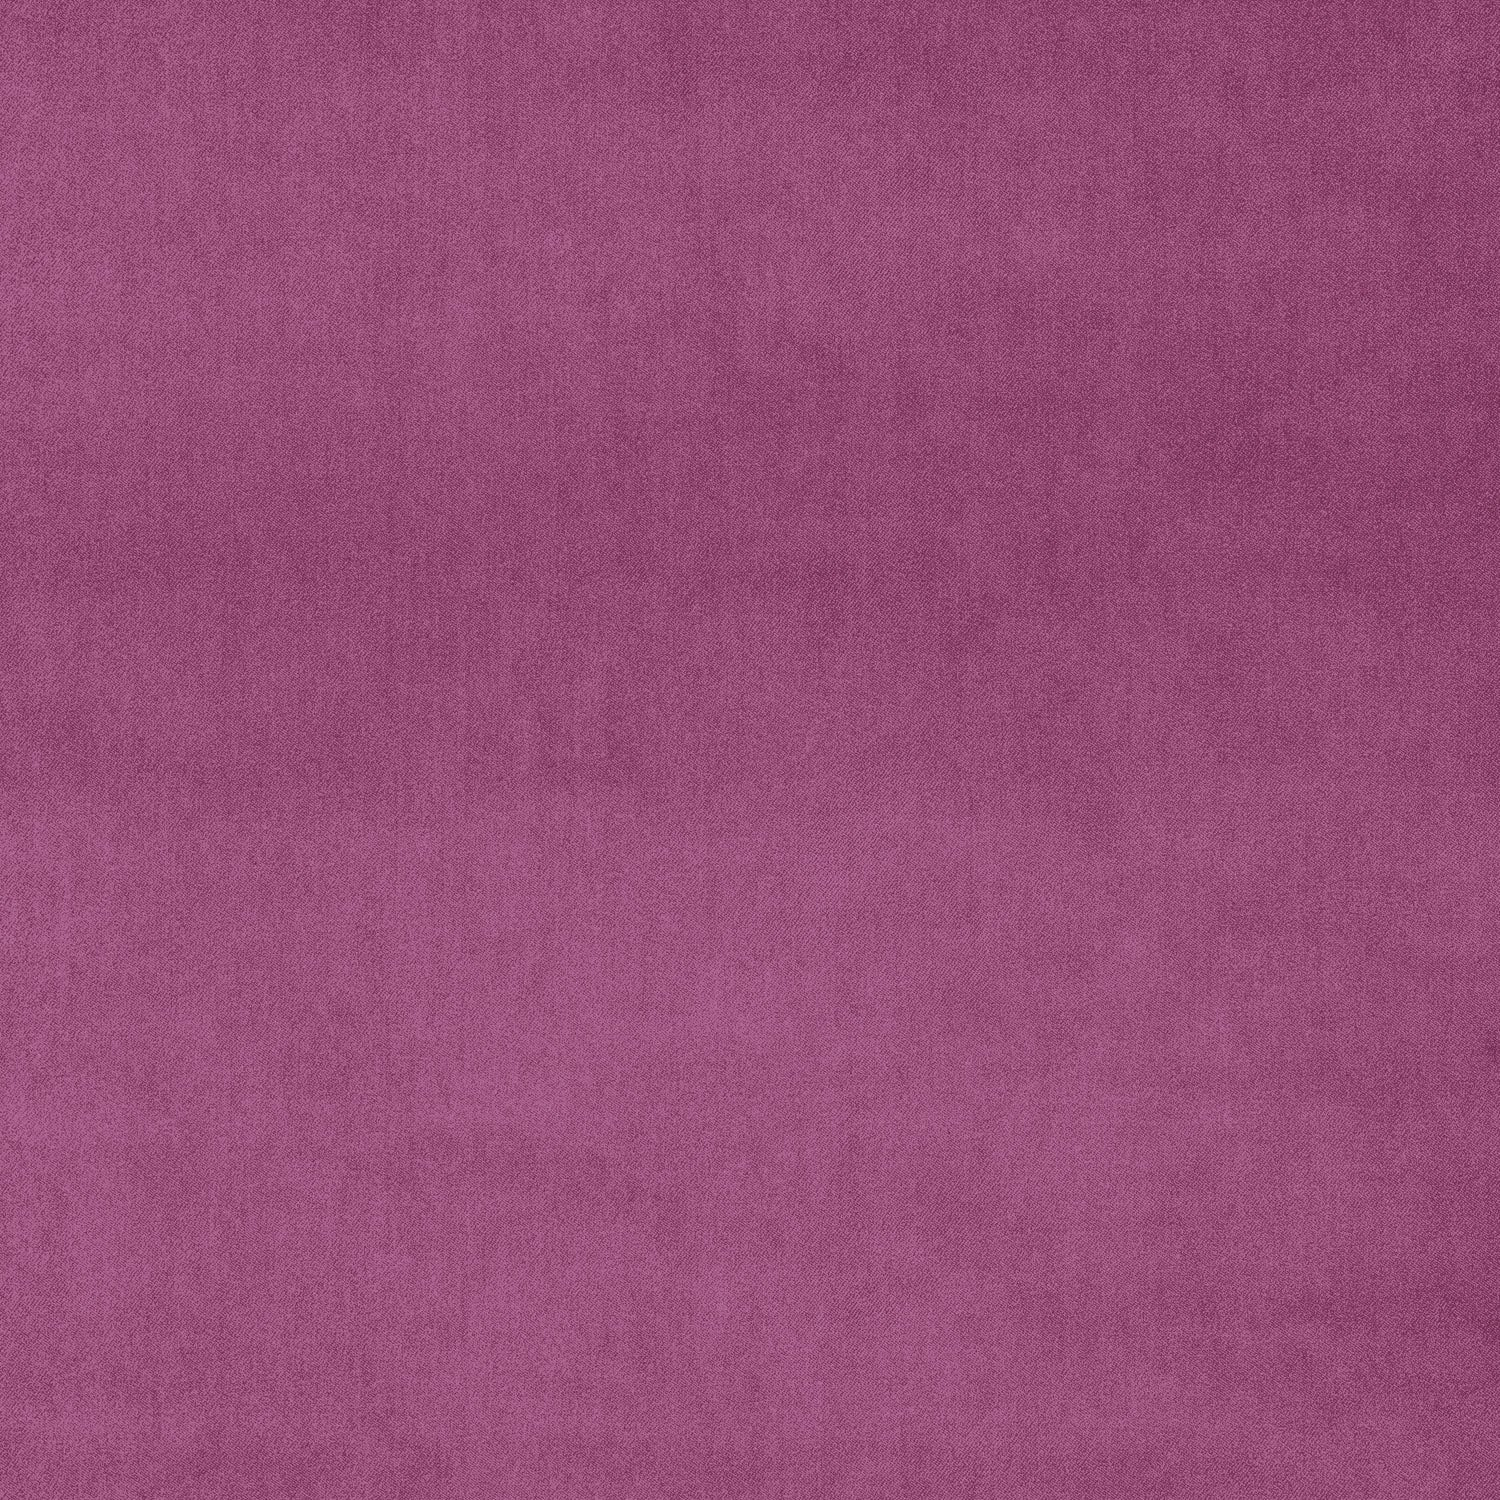 Plain purple velvet fabric for contract and domestic curtains and upholstery